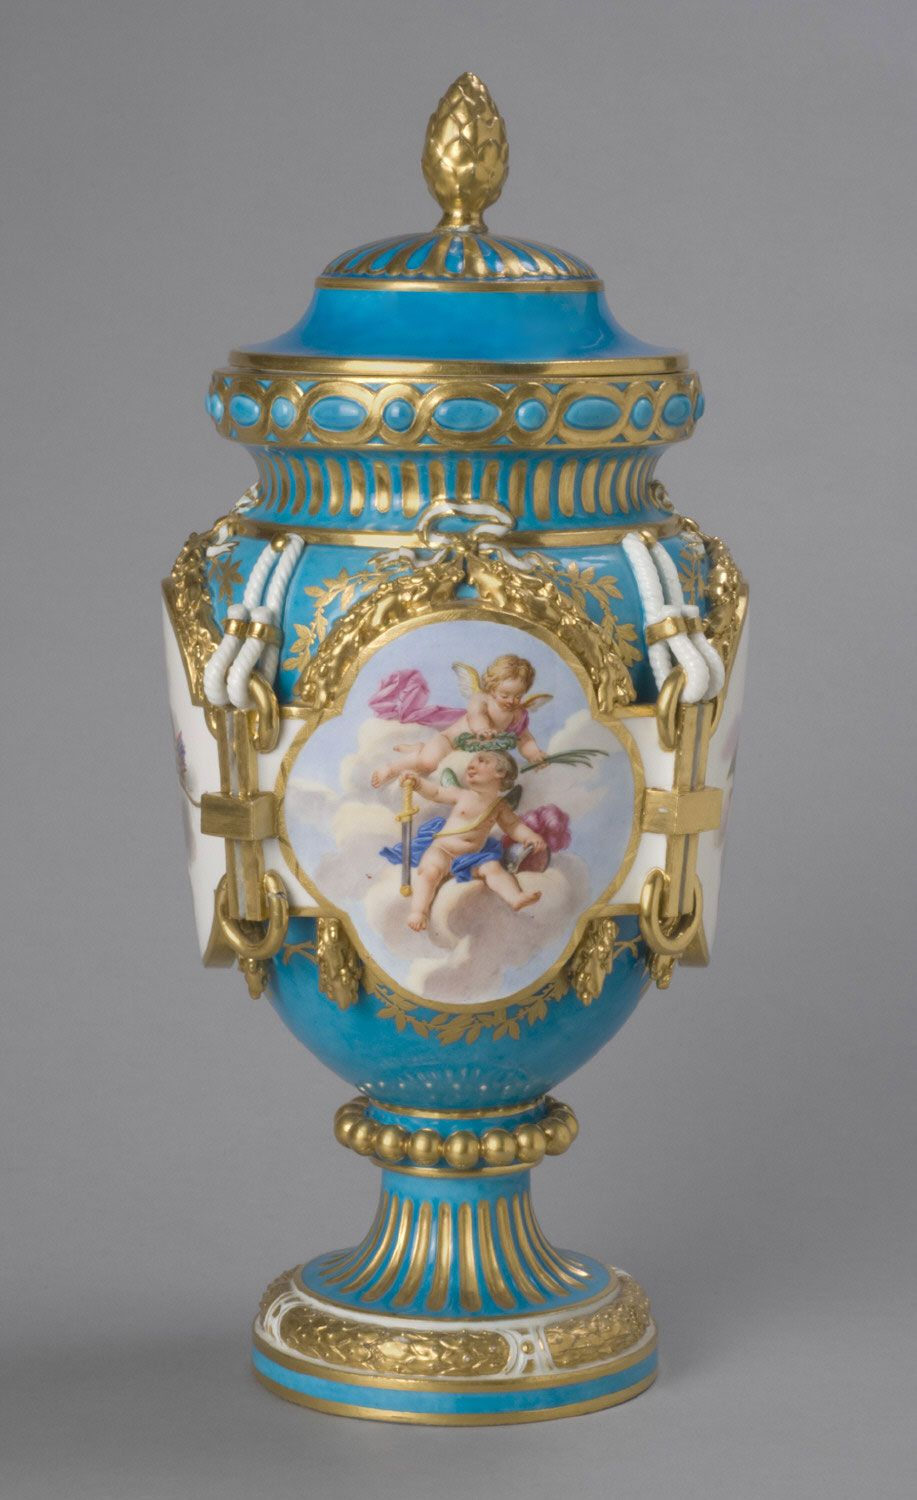 Vase with Lid Model probably by Étienne-Maurice Falconet, French, 1716 - 1791. Made by the Sèvres porcelain factory, Sèvres, France, 1756 - present. Geography: Made in Sèvres, France, Europe Date: c. 1763 Medium: Soft-paste porcelain with enamel and gilt decoration